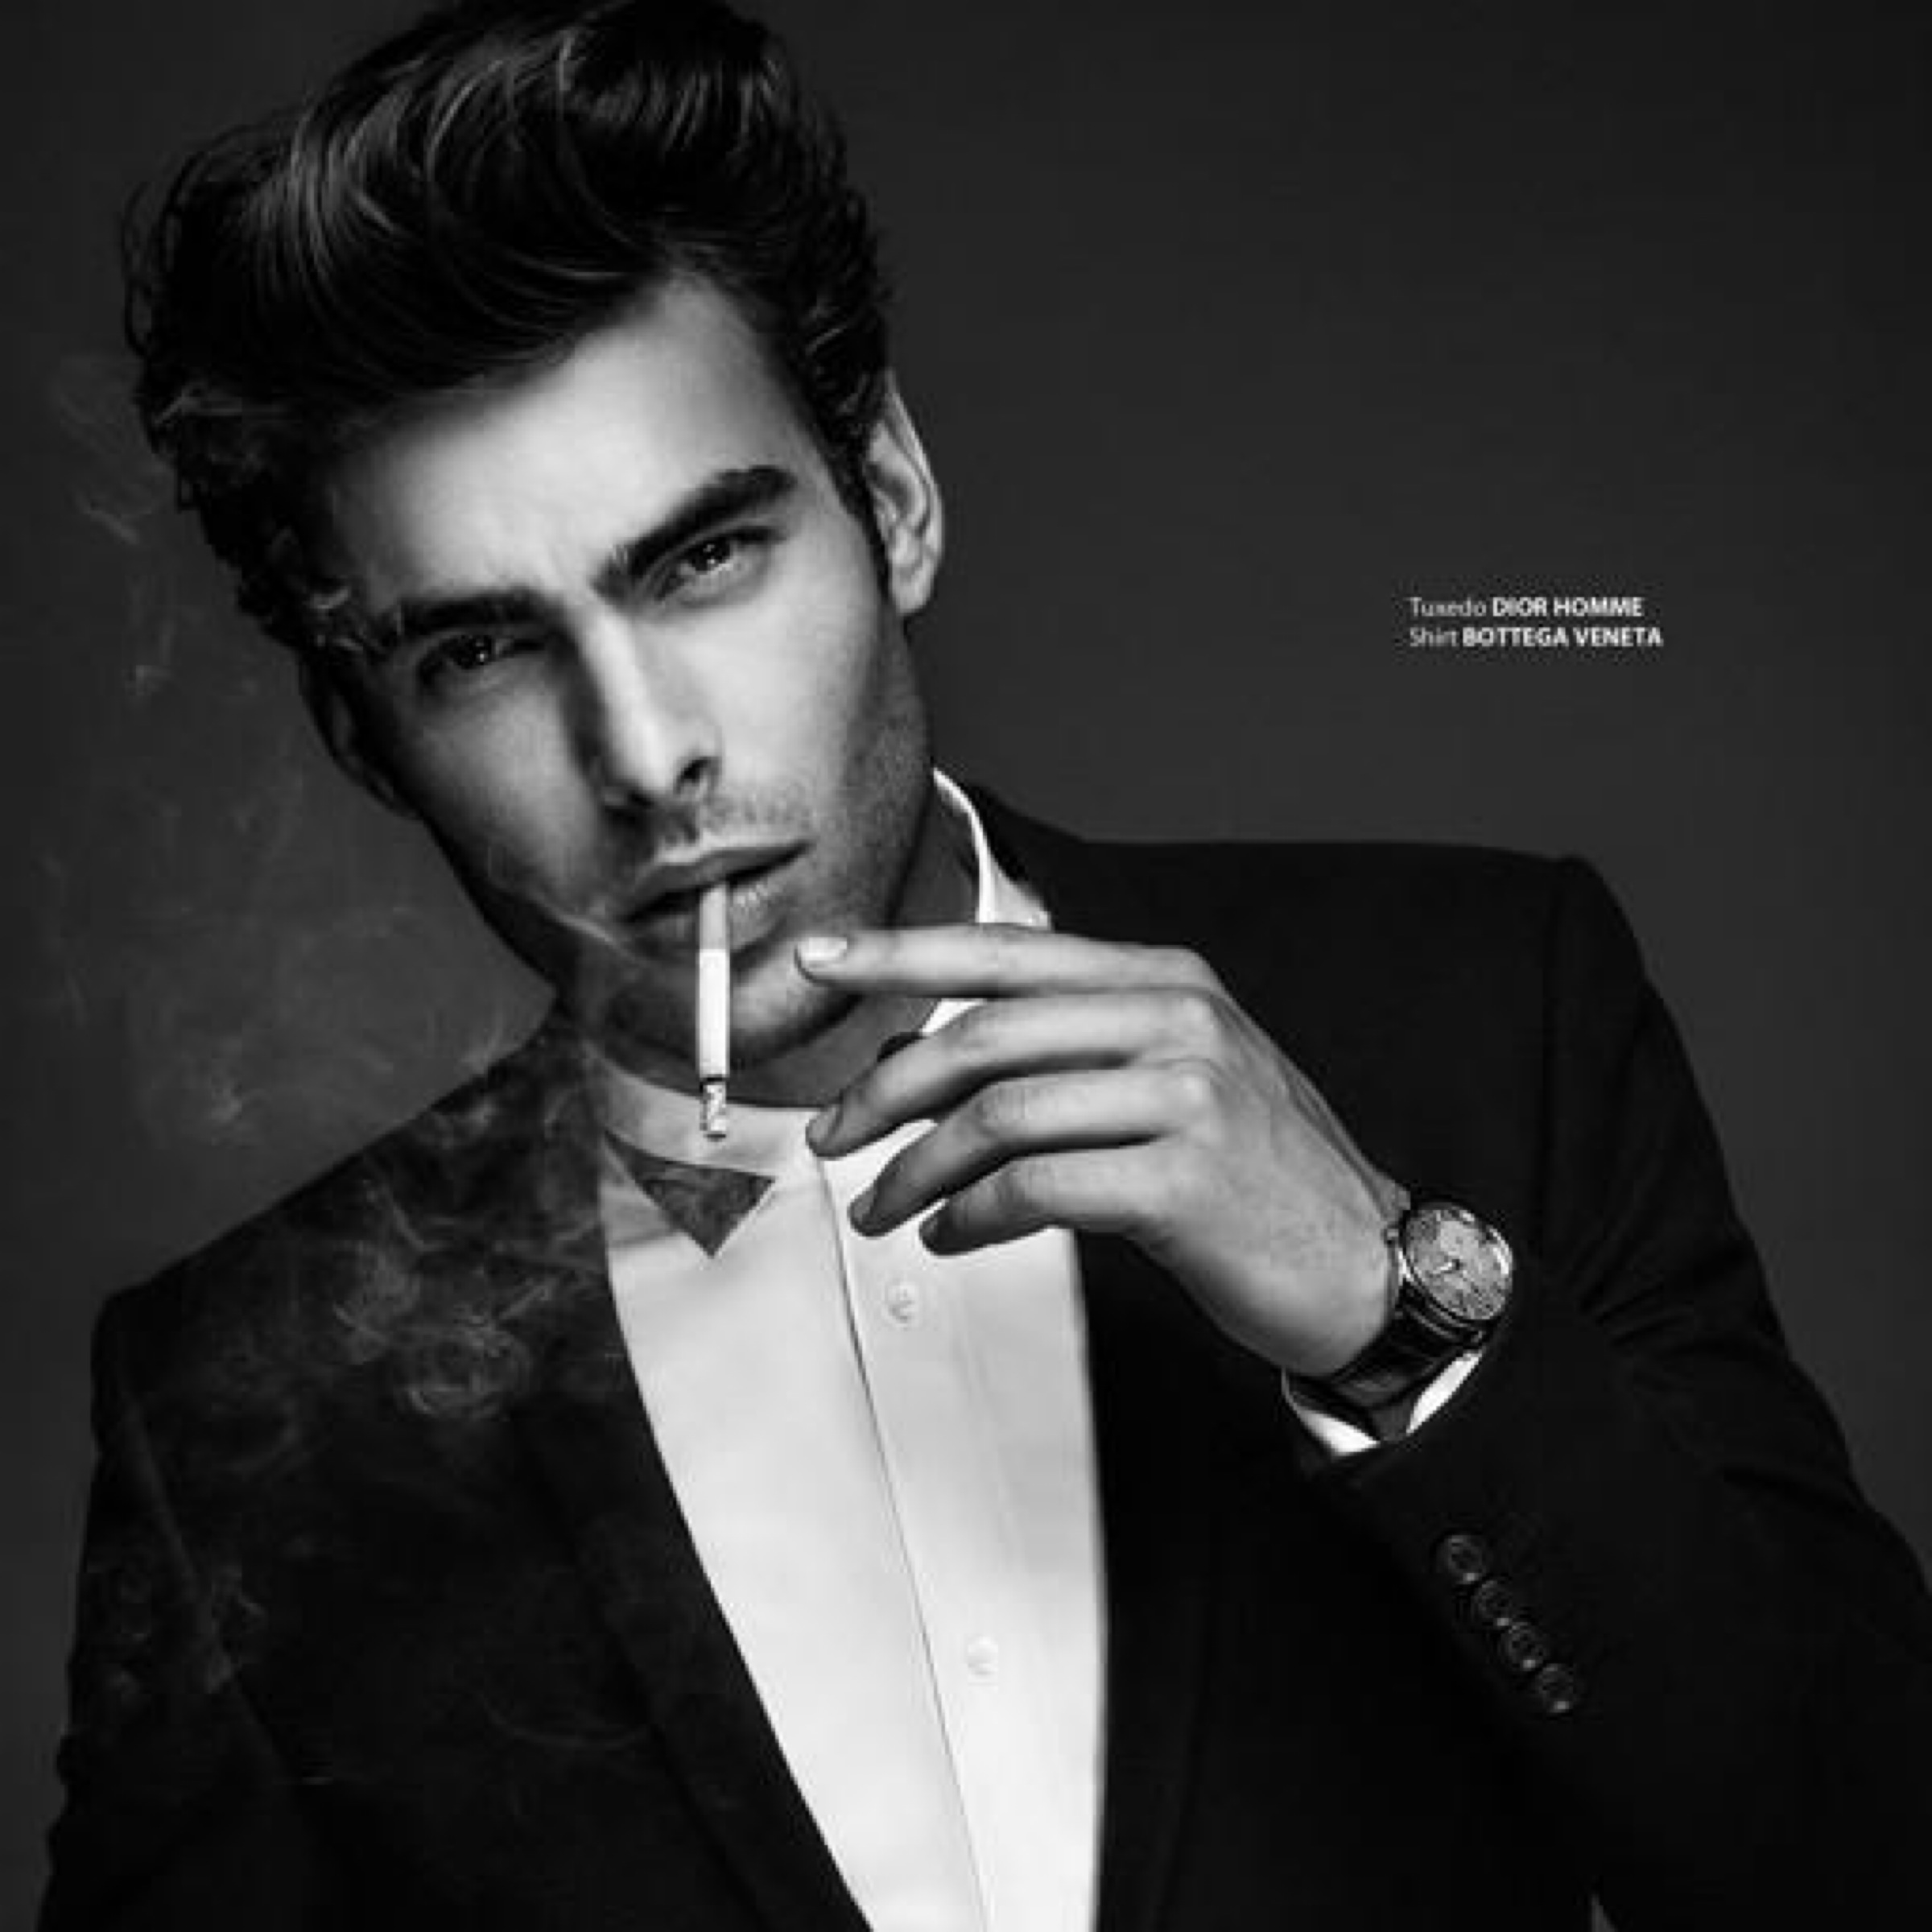 #3 (131 likes) Jon Kortajarena by Anthony Meyer for Apollo Novo 2012. Tuxedo by Dior Homme. Shirt by Bottega Veneta